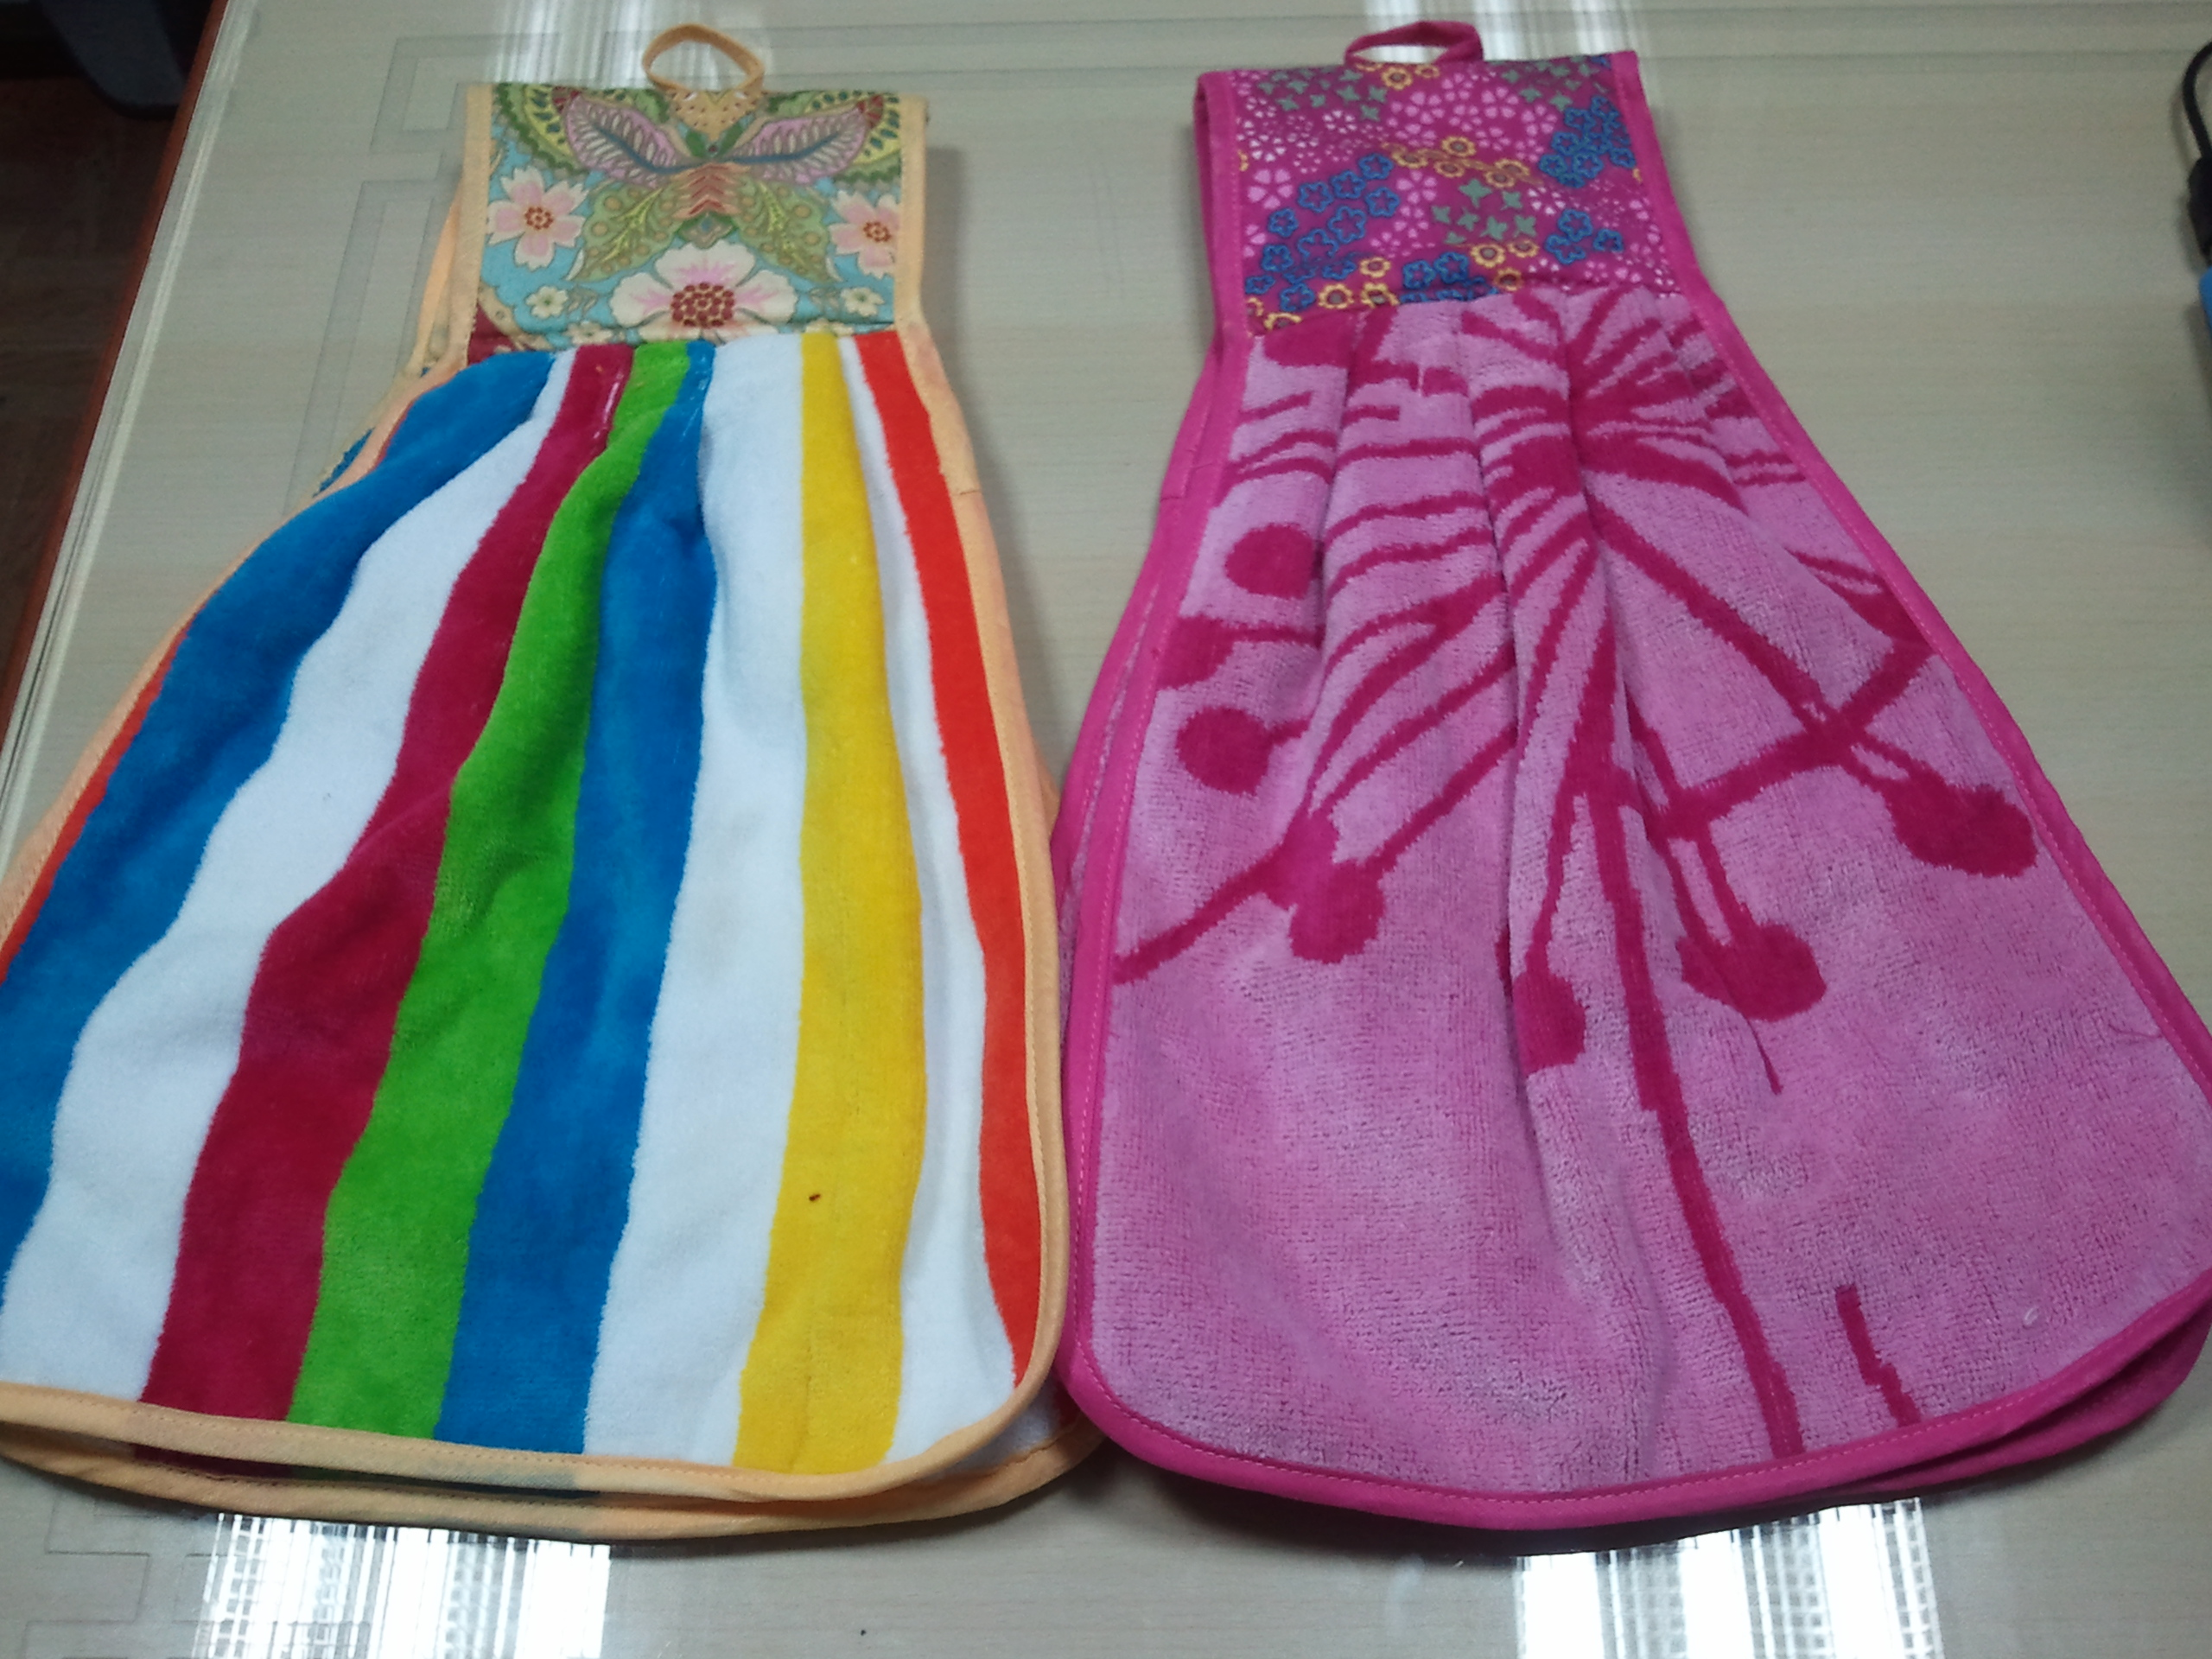 We Also Offer Different Terry Kitchen Towels With Colorful Designs. Hanging  Loops Are Also Attached With These Kitchen Towels And Can Be Used For  Multi  ...